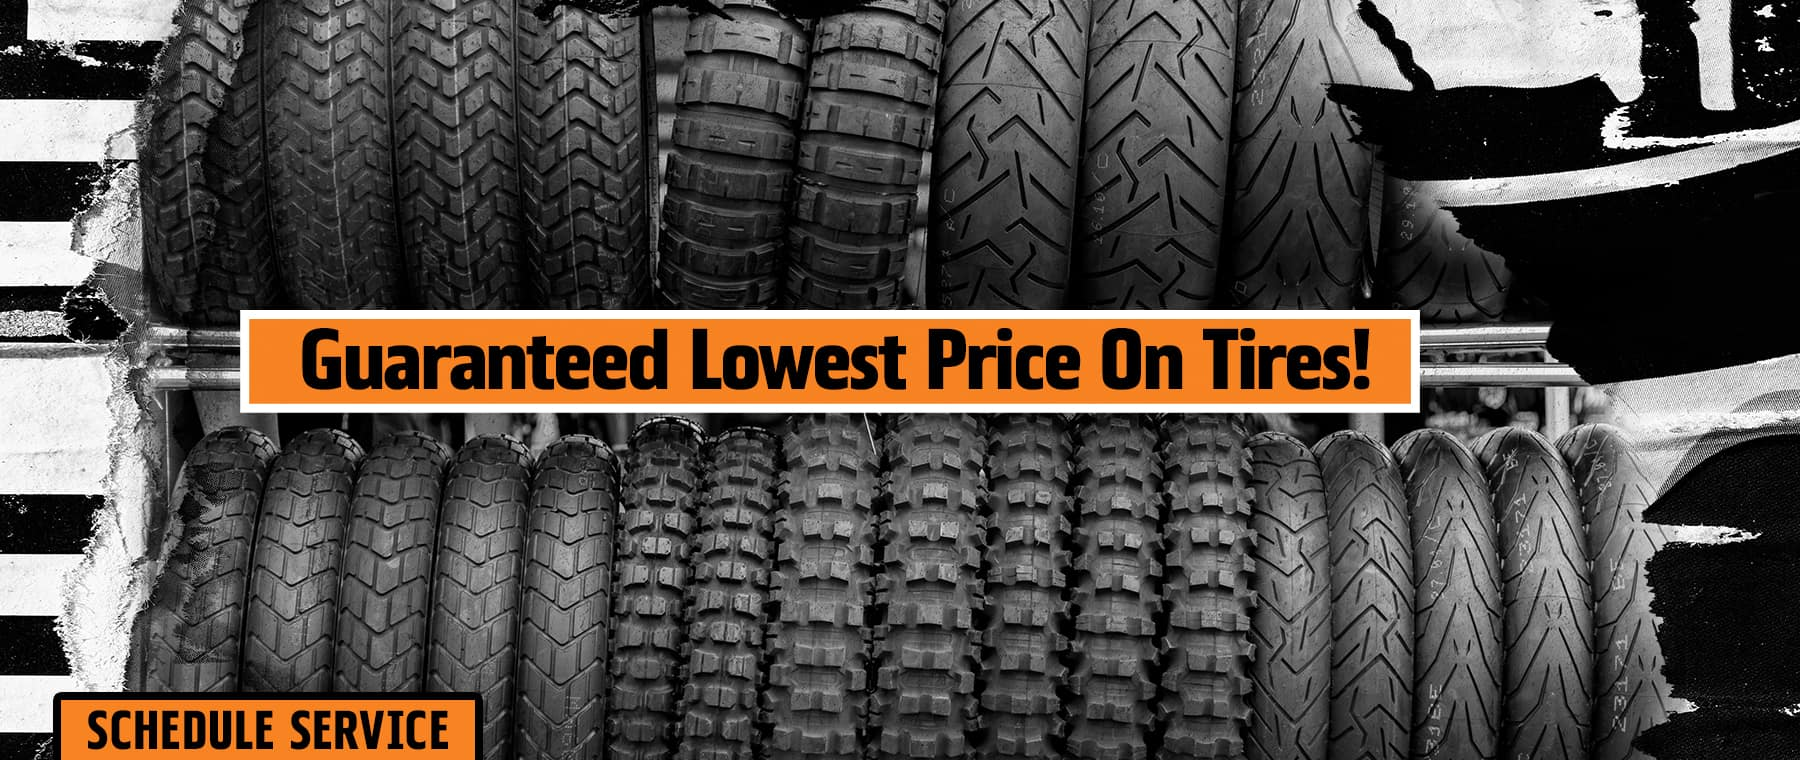 Guaranteed Lowest Price on Tires!